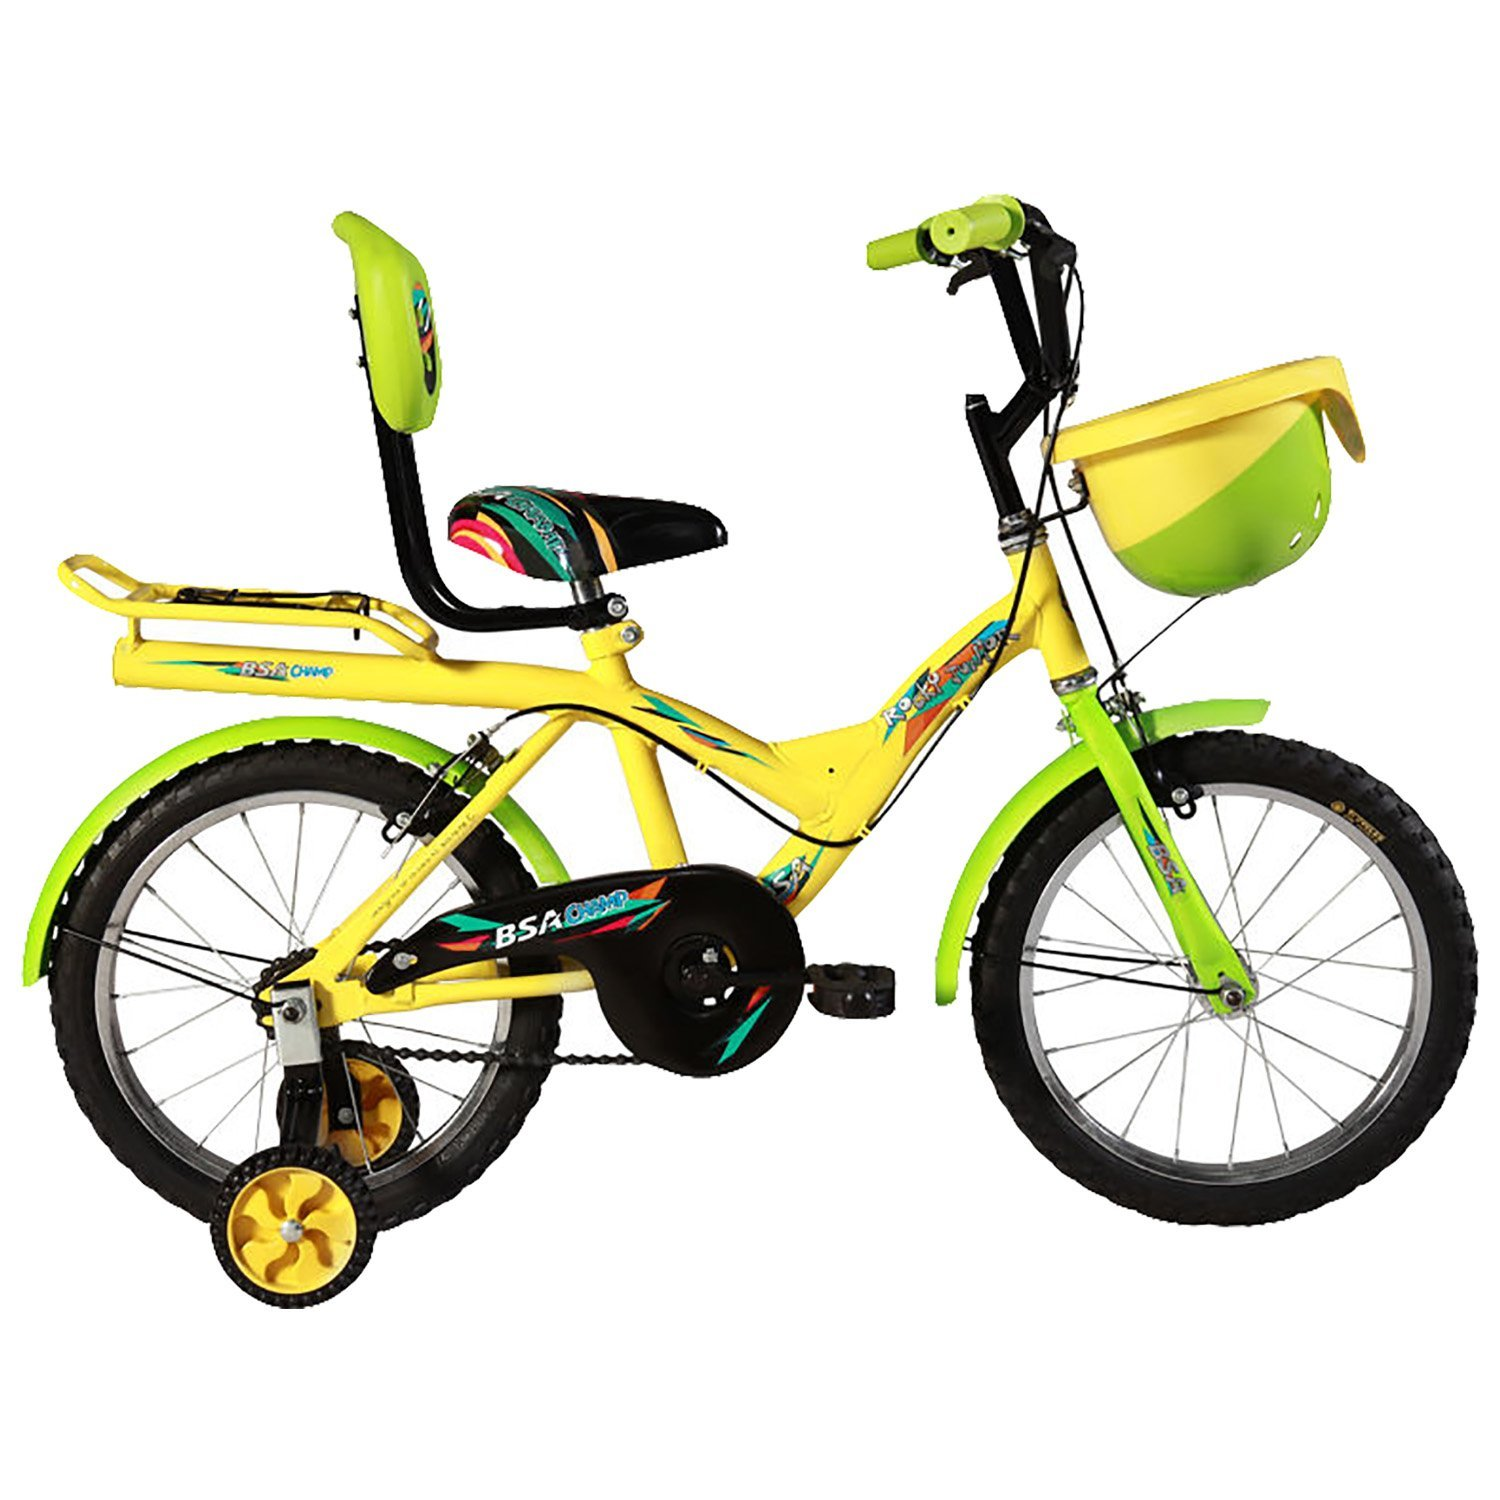 BSA Champ Rock Junior Bicycle, Yellow & Green - (16 Inch): Amazon.in ...